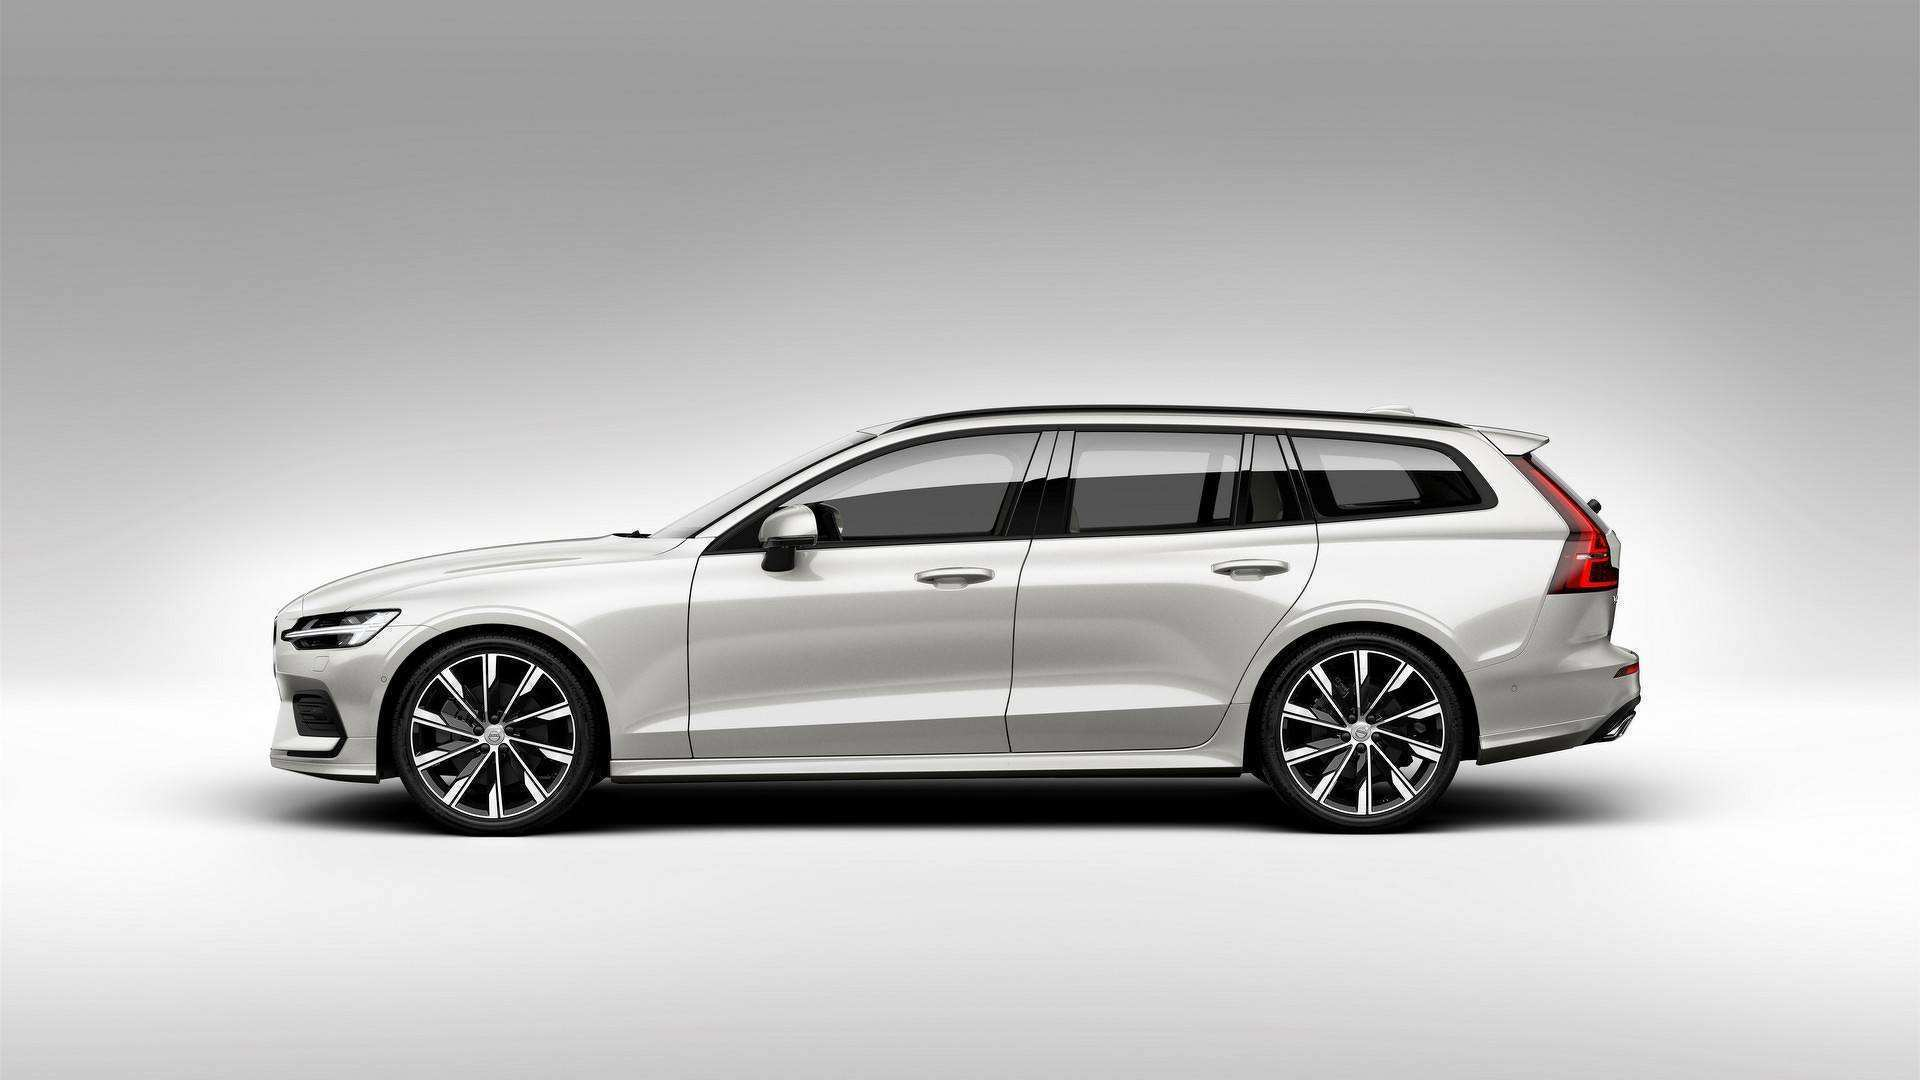 18 The Best 2019 Volvo V60 Cross Country Wallpaper